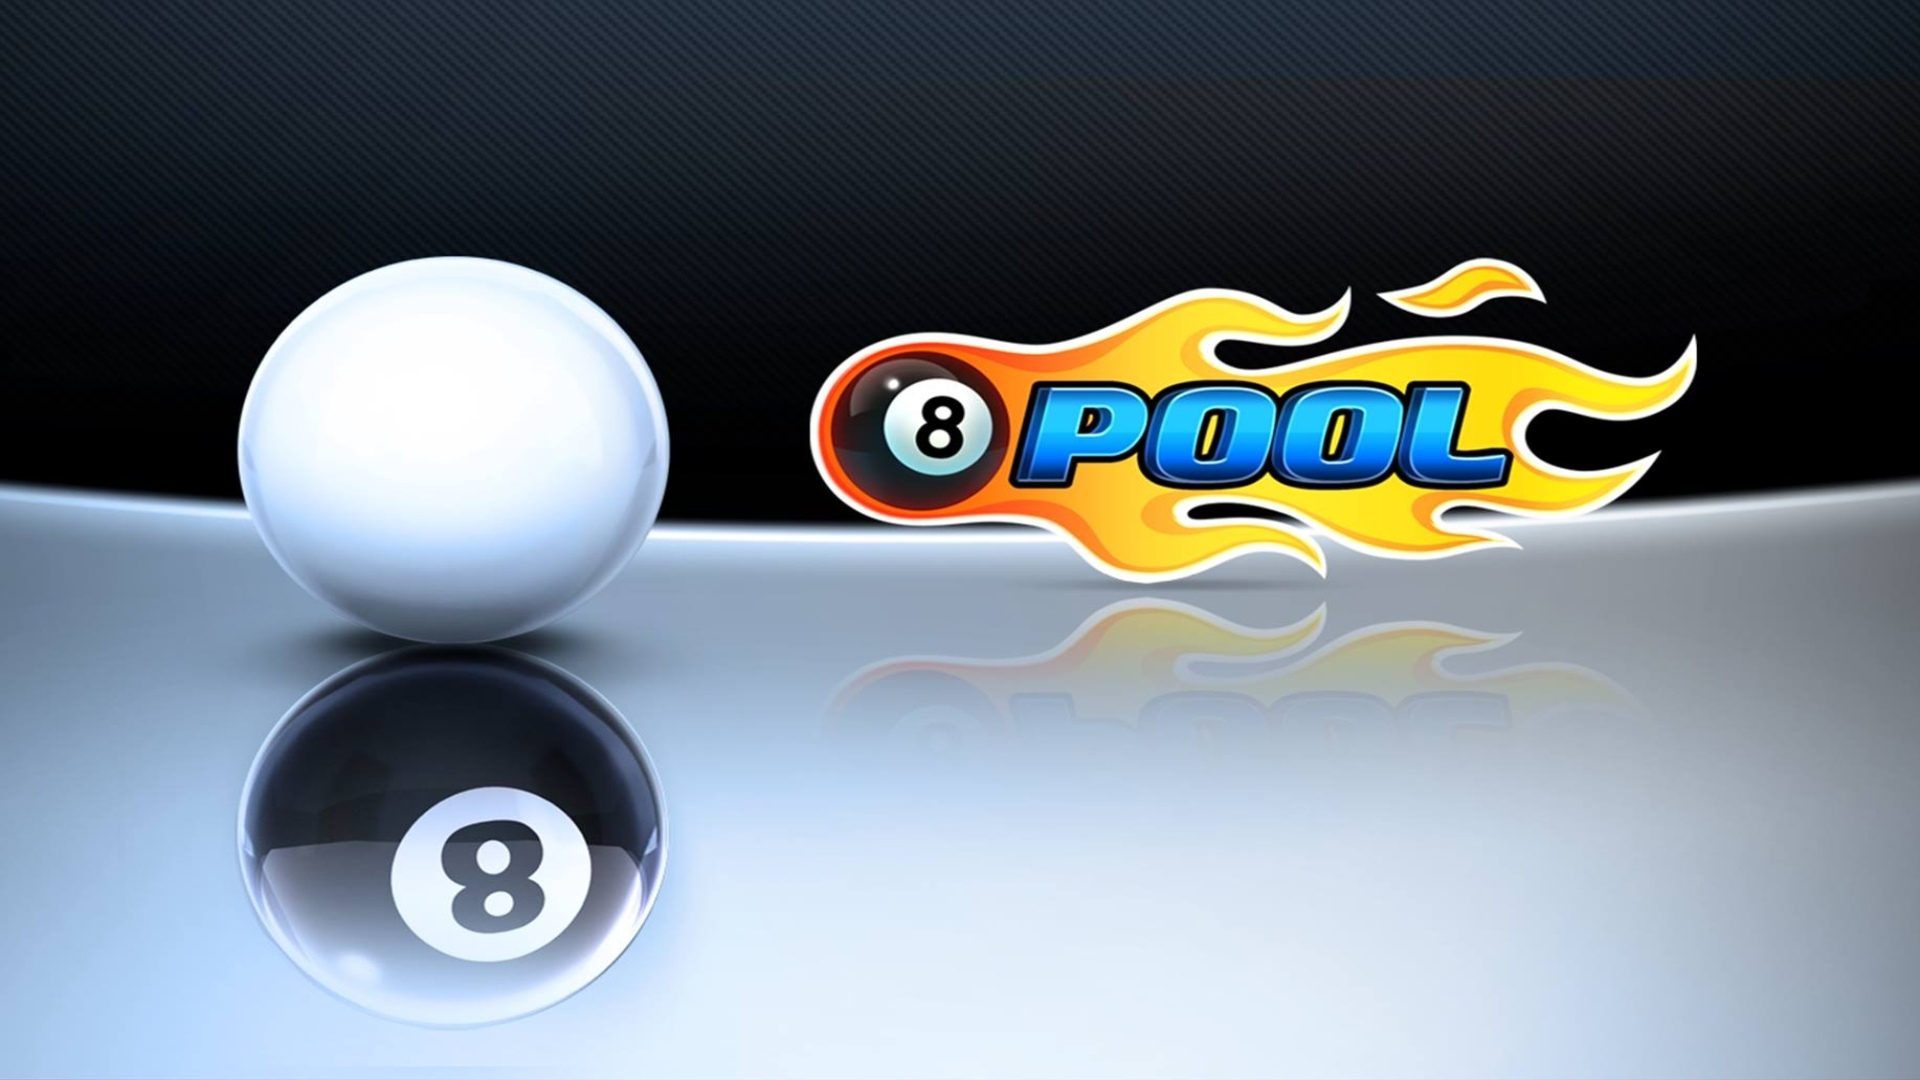 8 Ball Pool Backgrounds